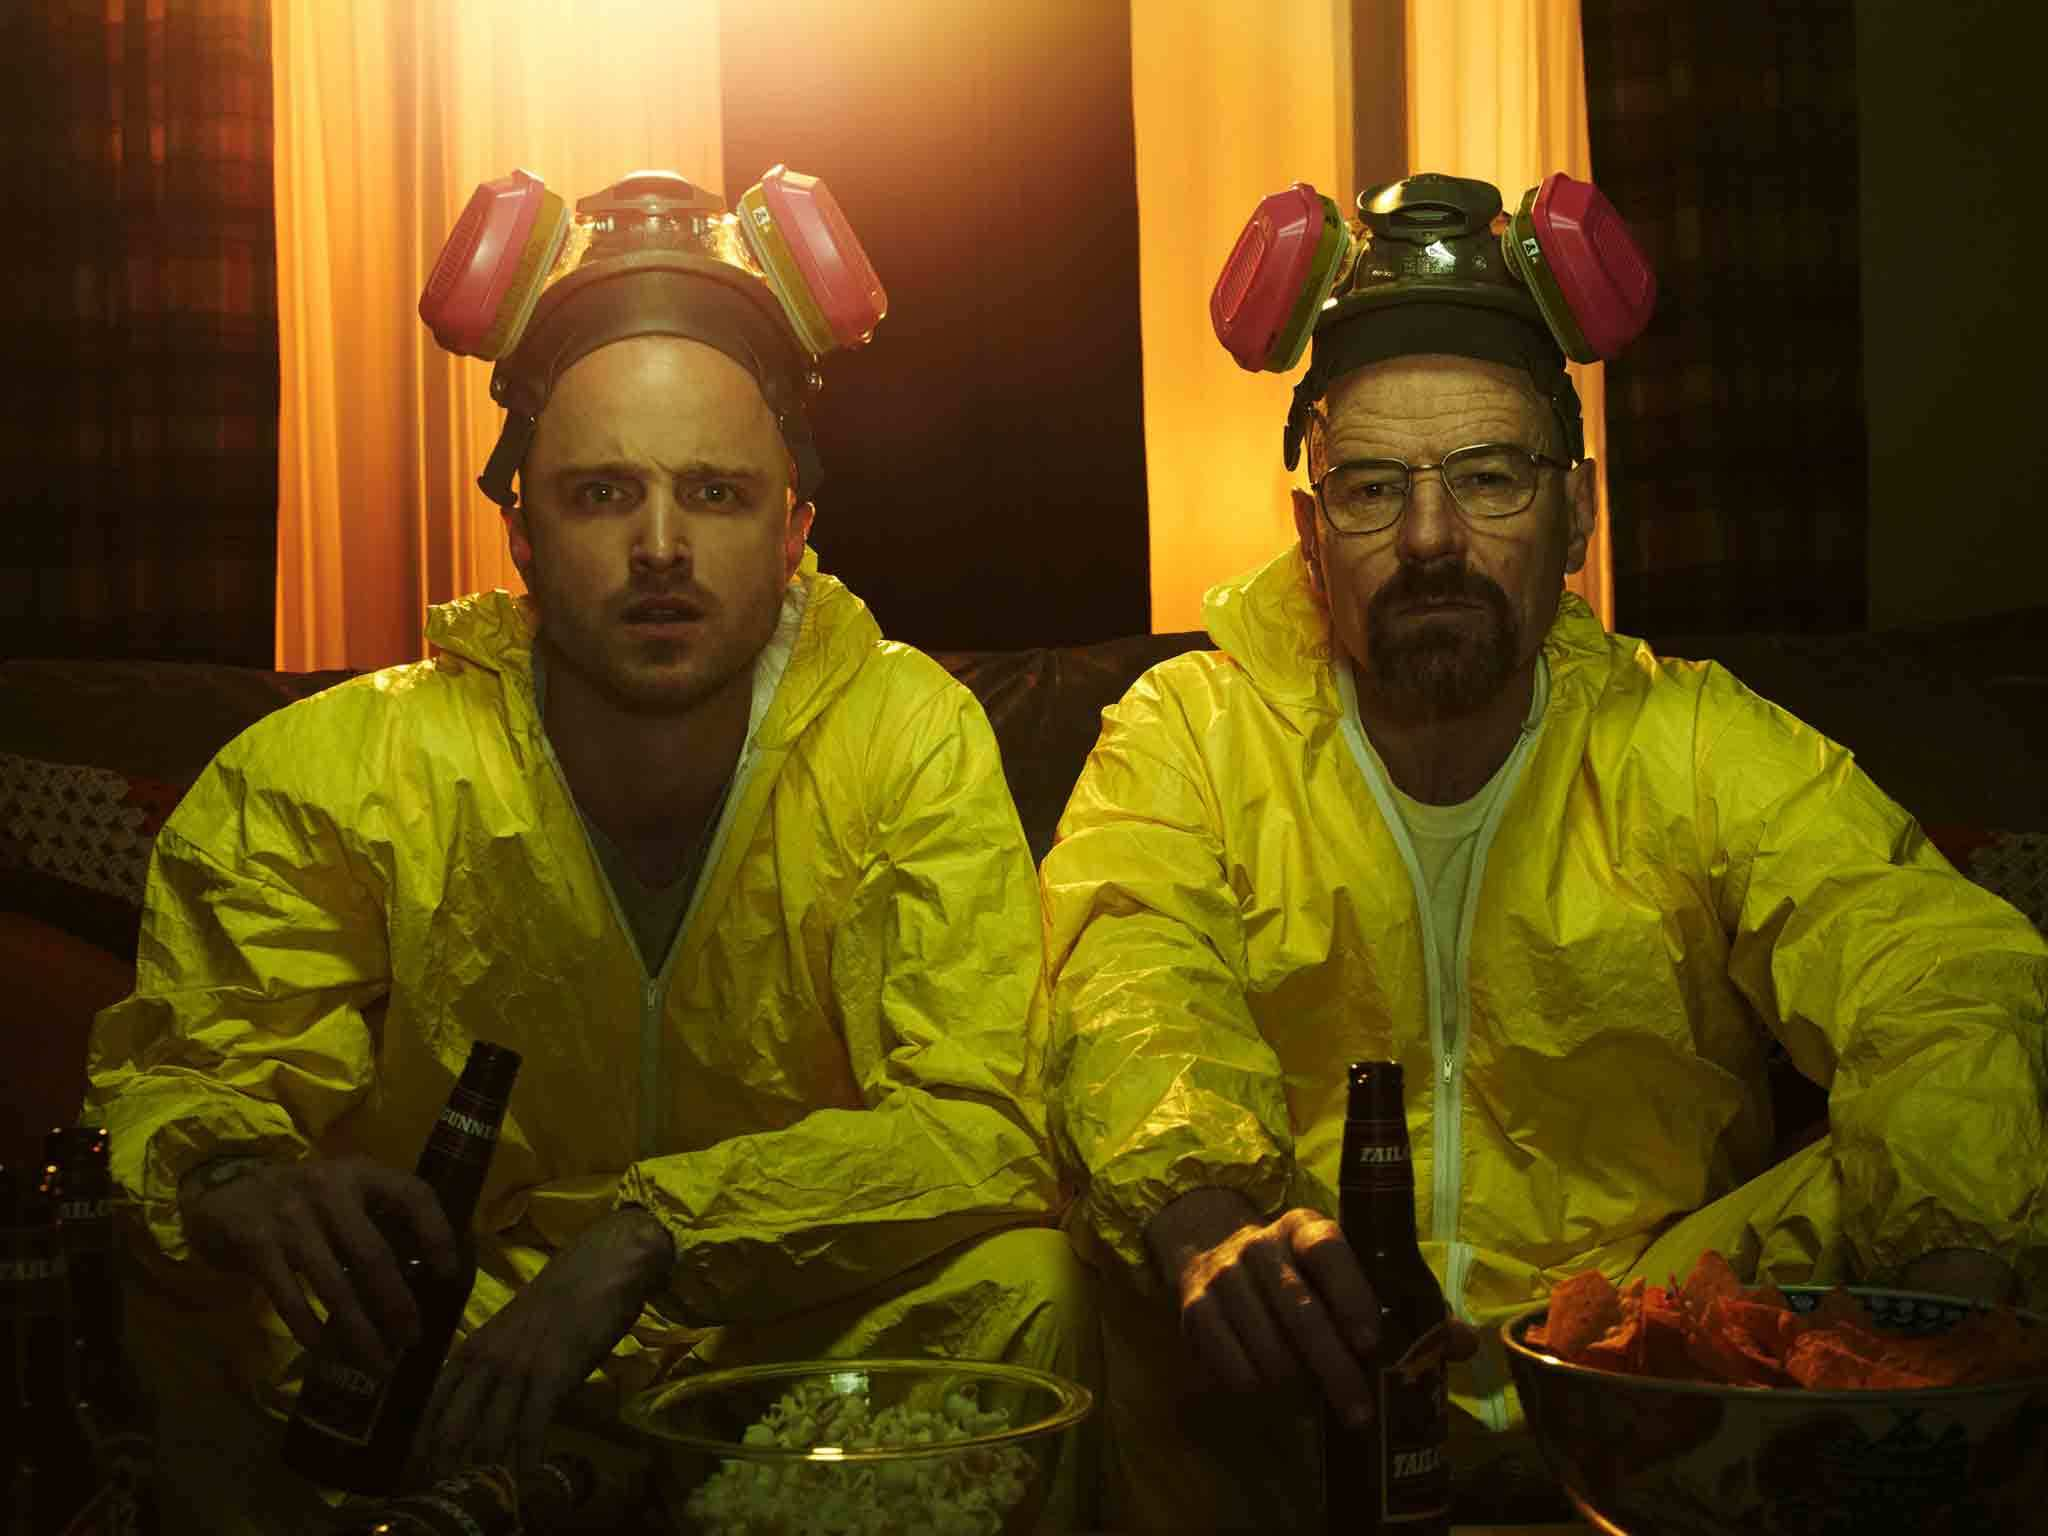 50 best series to stream online now in the UK - watch online shows - 'Breaking Bad'